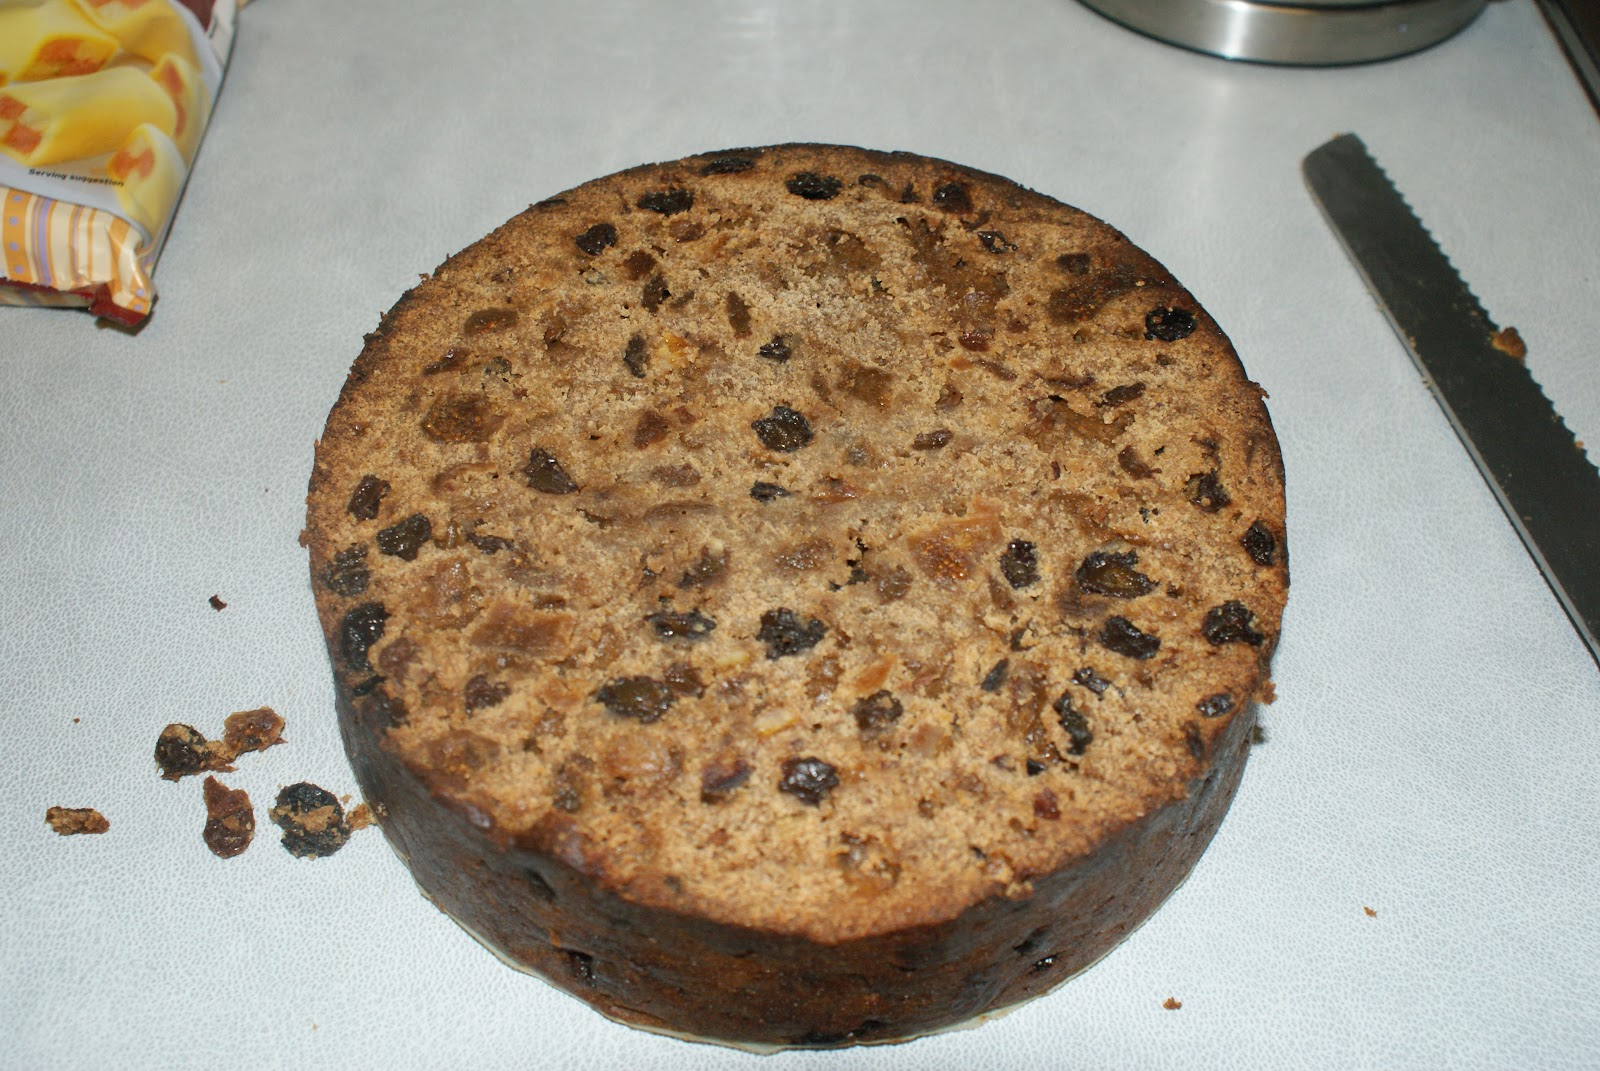 How to marzipan a christmas cake - Using A Large Serrated Knife Cut The Dome Of The Top Of The Cake If Necessary